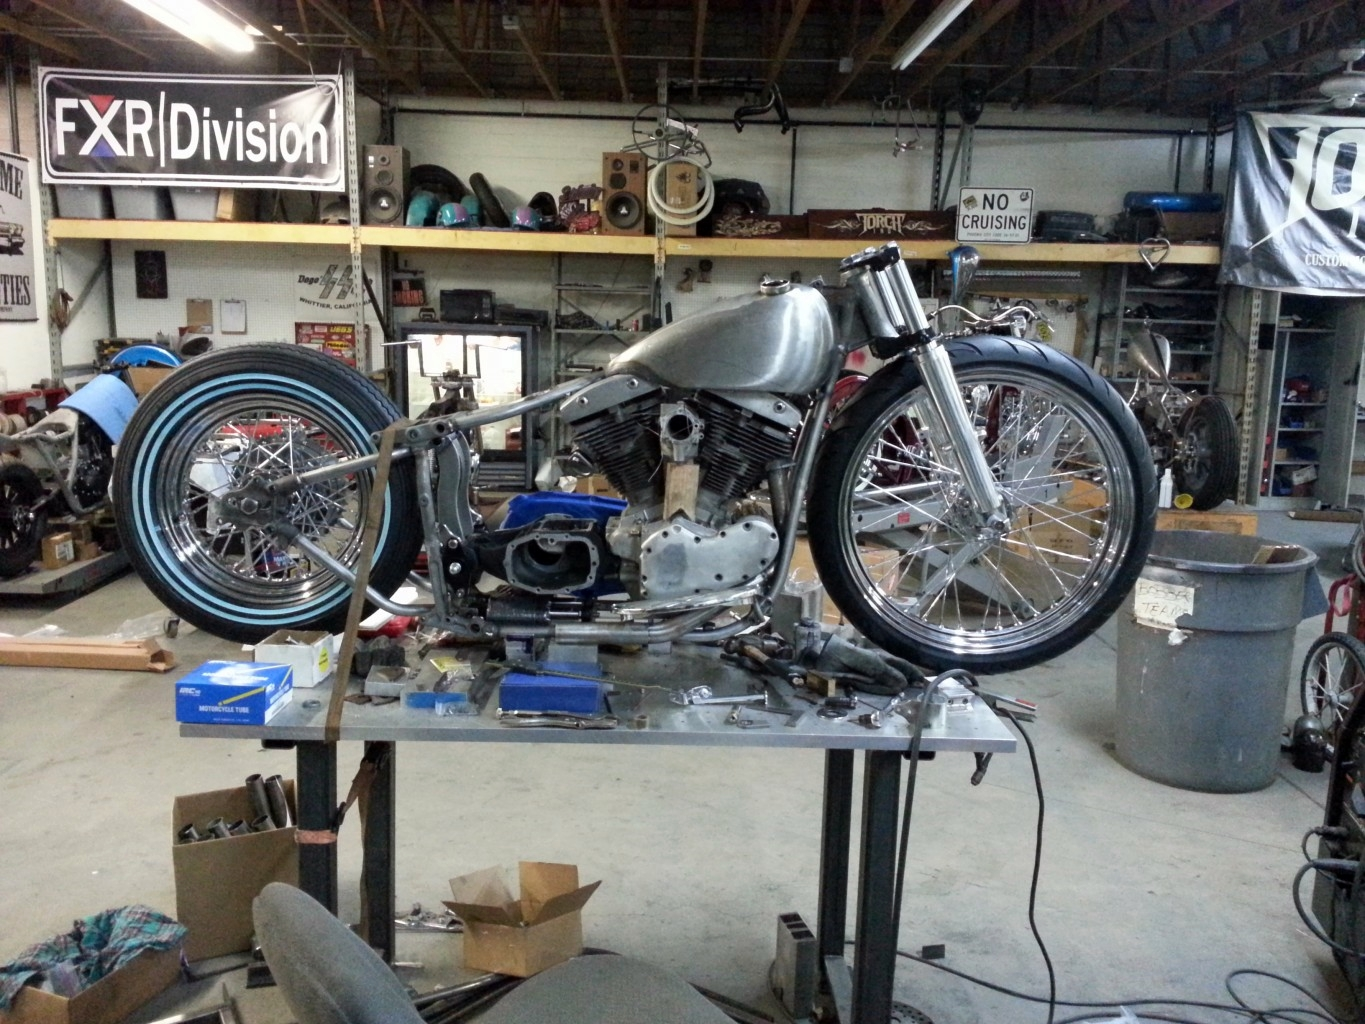 dWrenched - Kustom Kulture and Crazy Bikes: ONE OF THE BEST